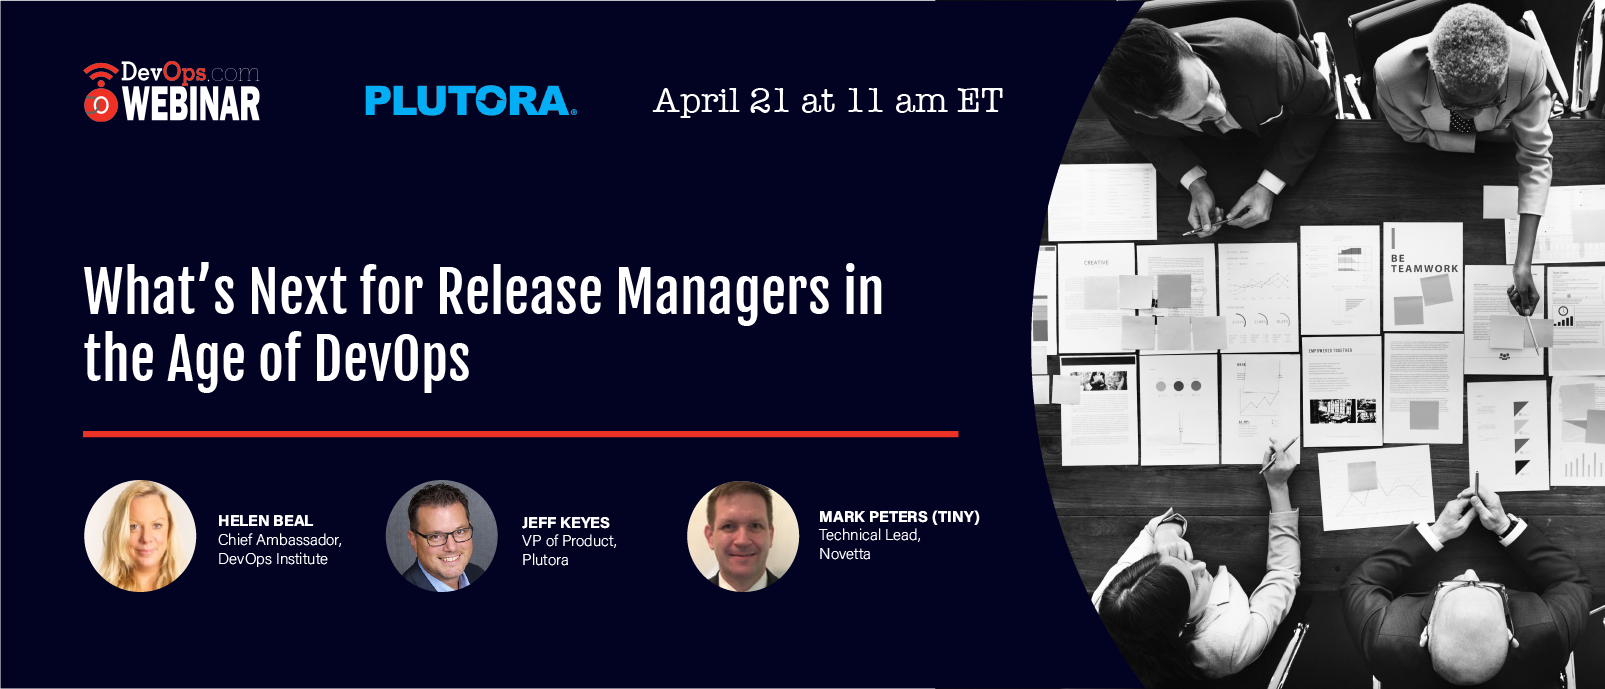 What's Next for Release Managers in the Age of DevOps